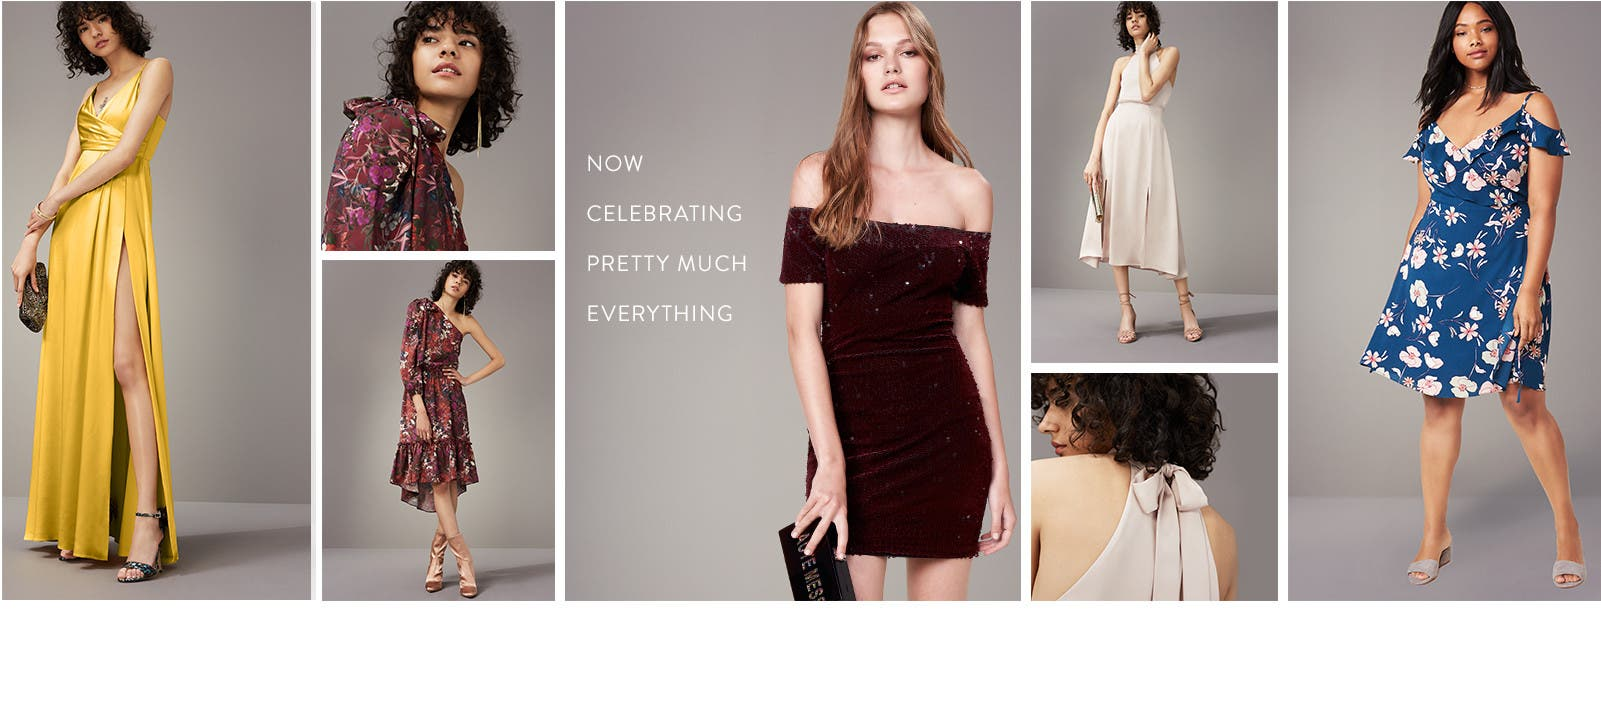 Now celebrating in romantic dresses.